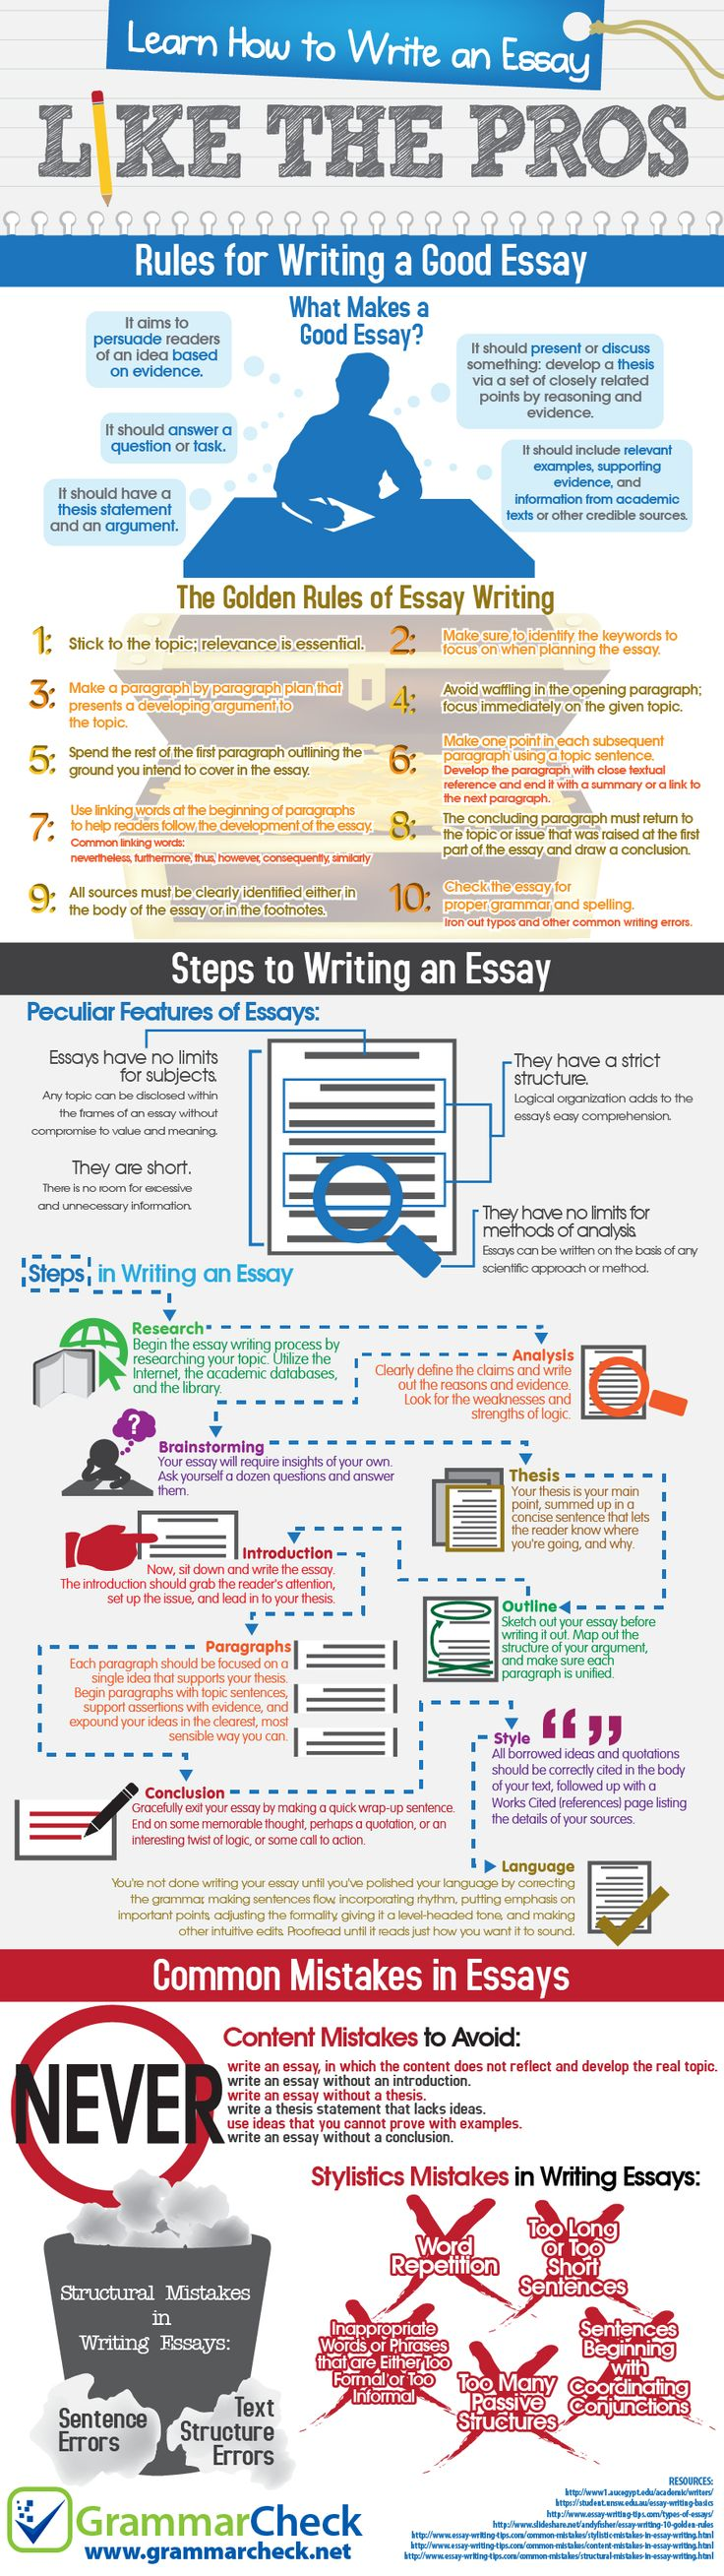 best ideas about essay writing essay writing how to write an essay like the pros infographic